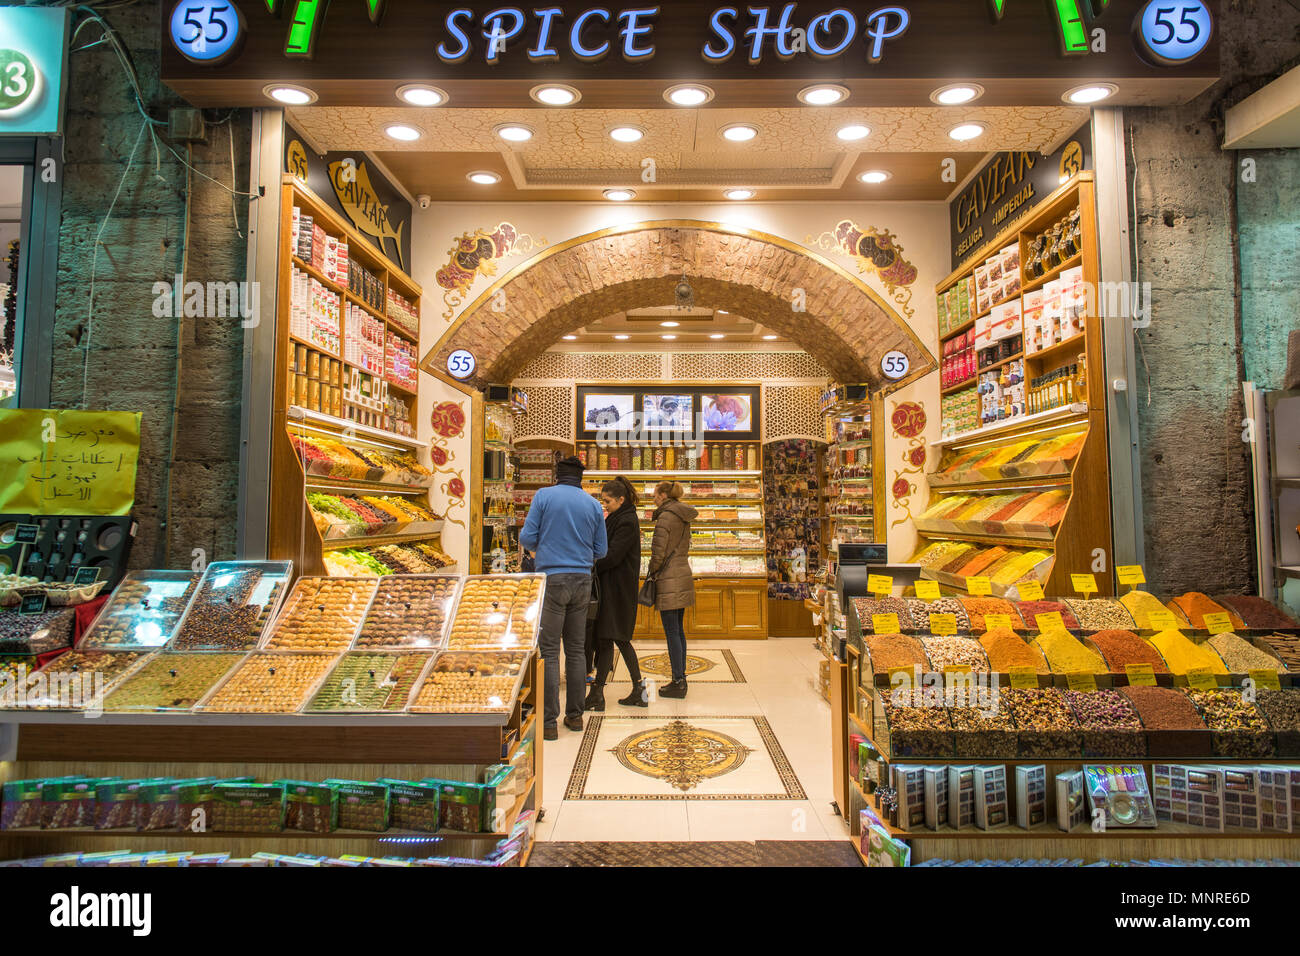 Customers peruse the shelves of a spice shop at Istanbul Spice bazaar in Turkey - Stock Image